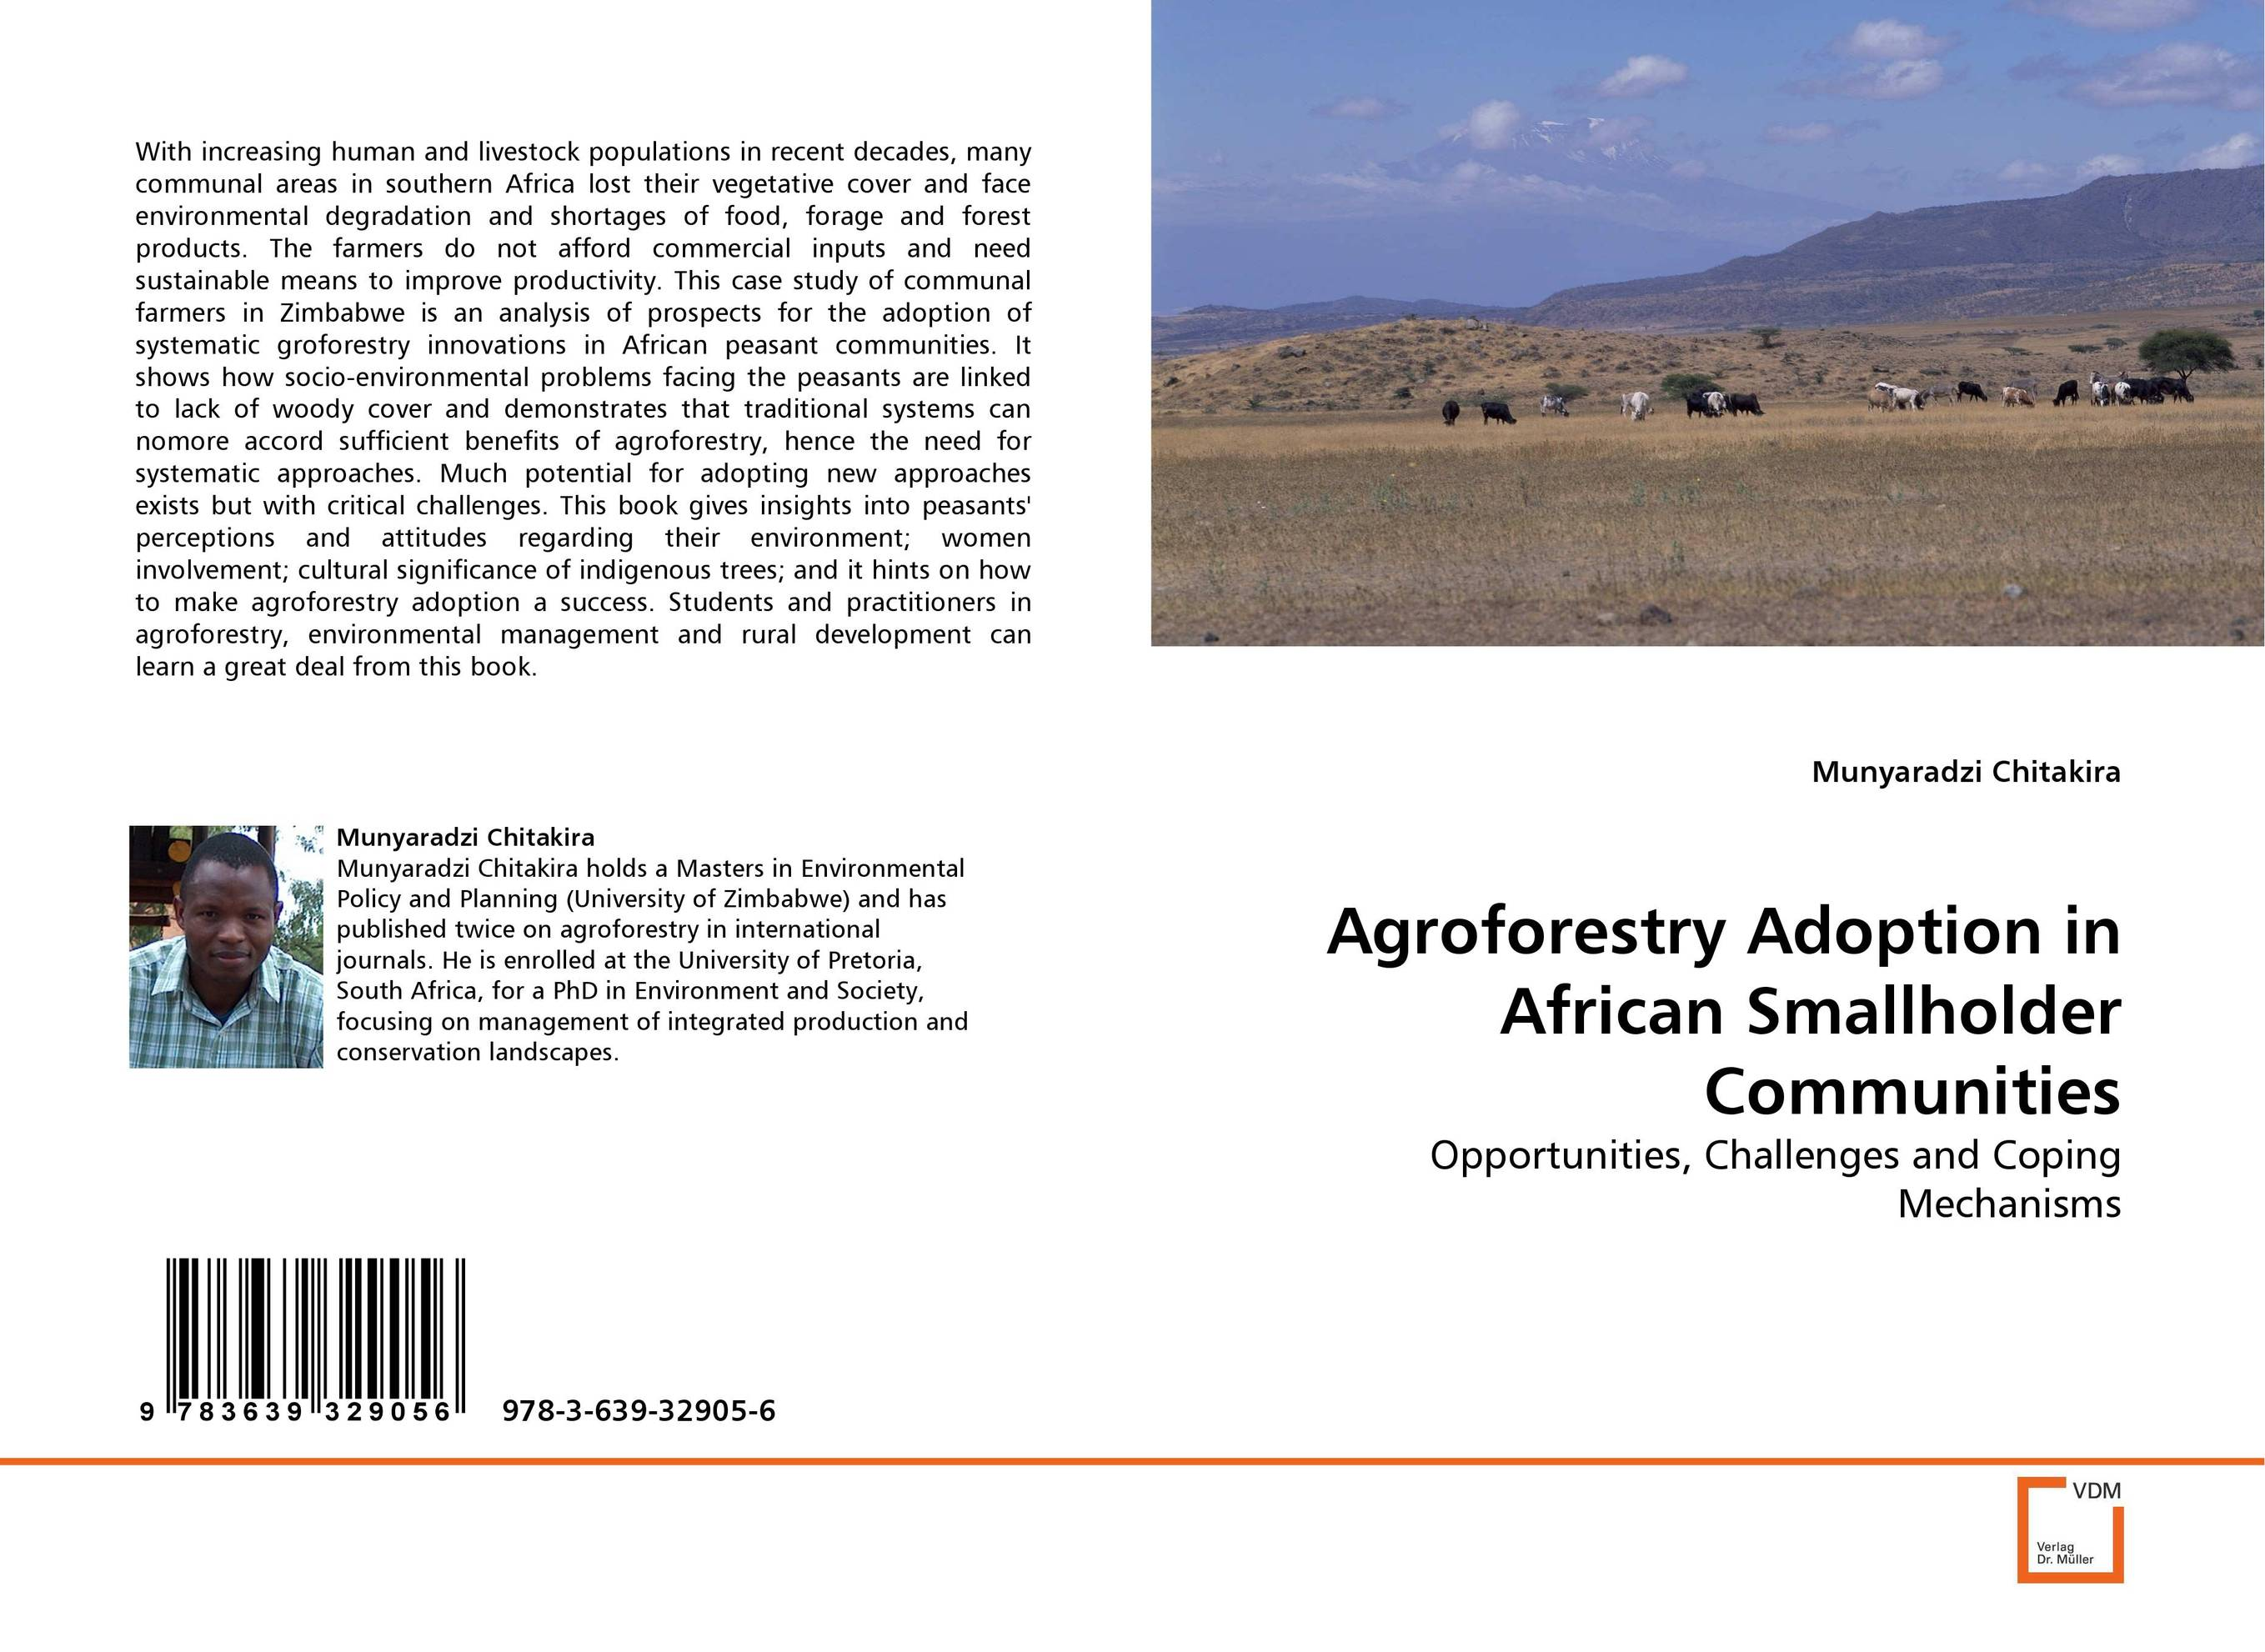 Agroforestry Adoption in African Smallholder  Communities role of women in agroforestry practices management